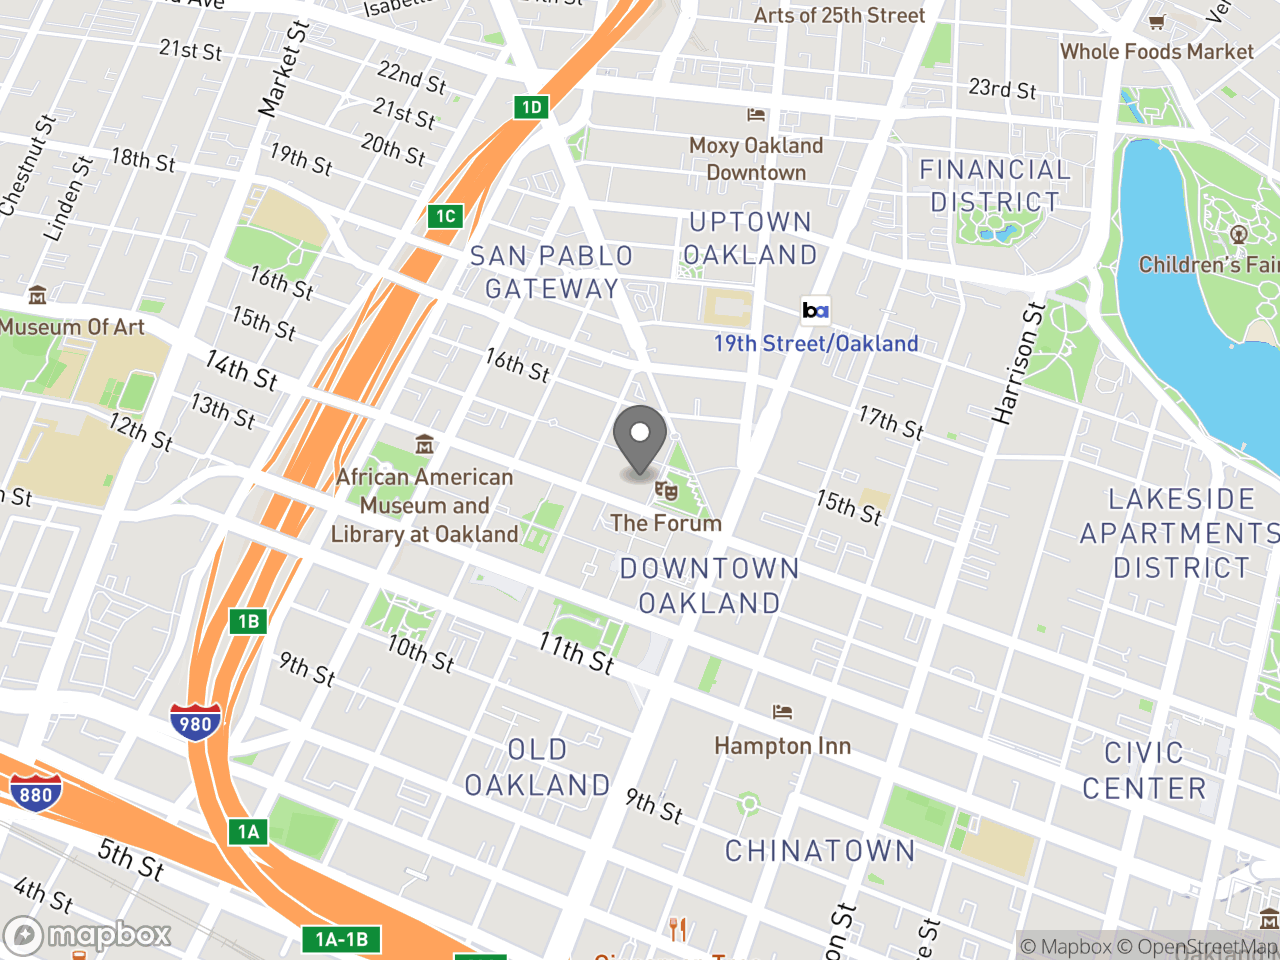 Map location for Alameda County-Oakland Community Action Partnership Administering Board Meeting October 10, 2016, located at 1 Frank H Ogawa Plaza in Oakland, CA 94612